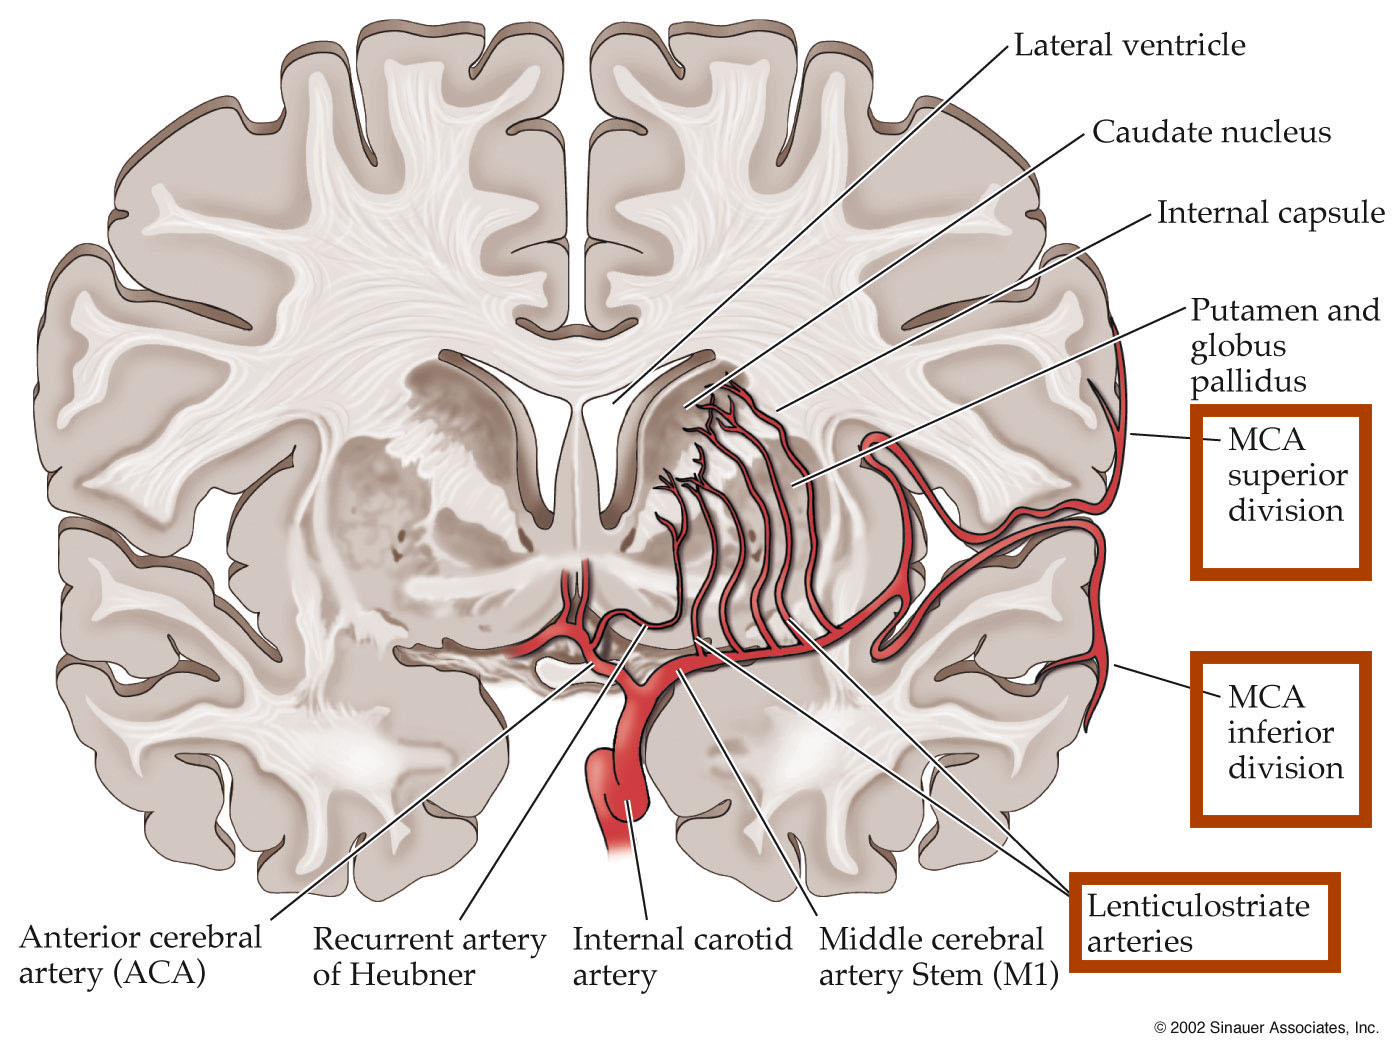 Middle cerebral artery anatomy